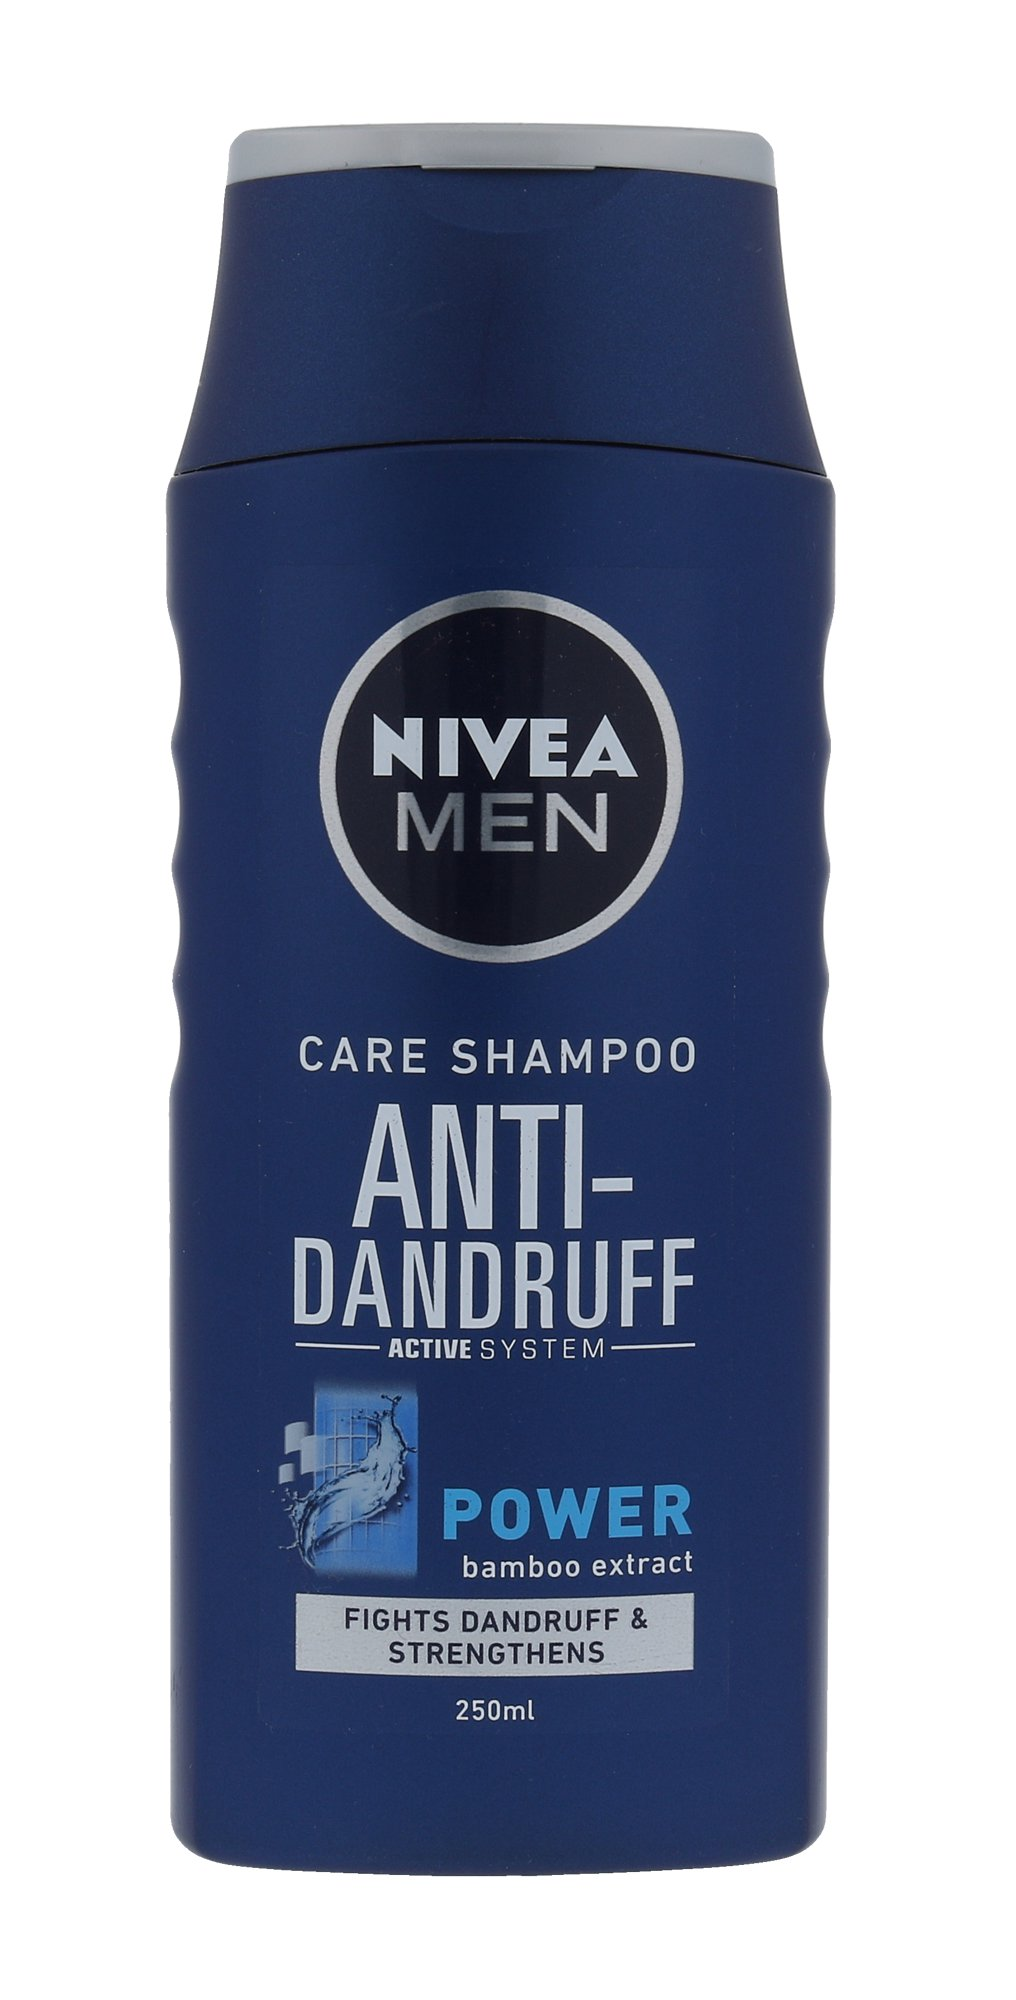 Nivea Men Anti-dandruff Power, Sampon 250ml